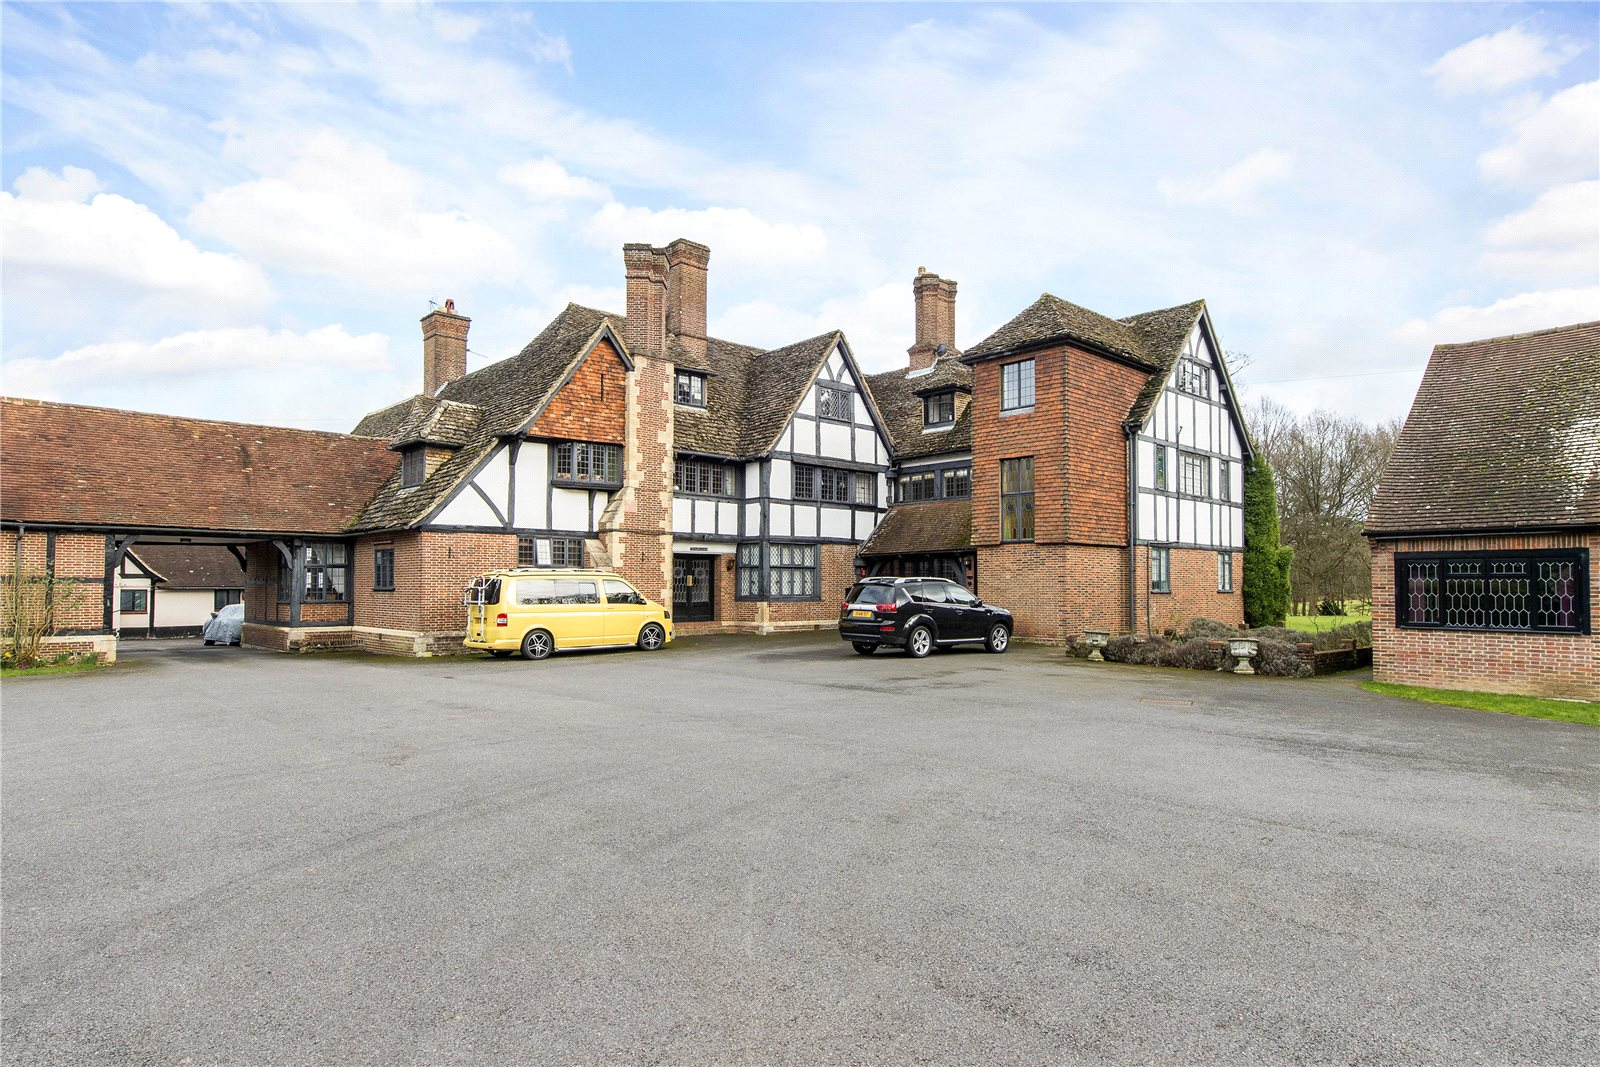 Additional photo for property listing at Fulmer Chase, Stoke Common Road, Fulmer, Buckinghamshire, SL3 Fulmer, Angleterre